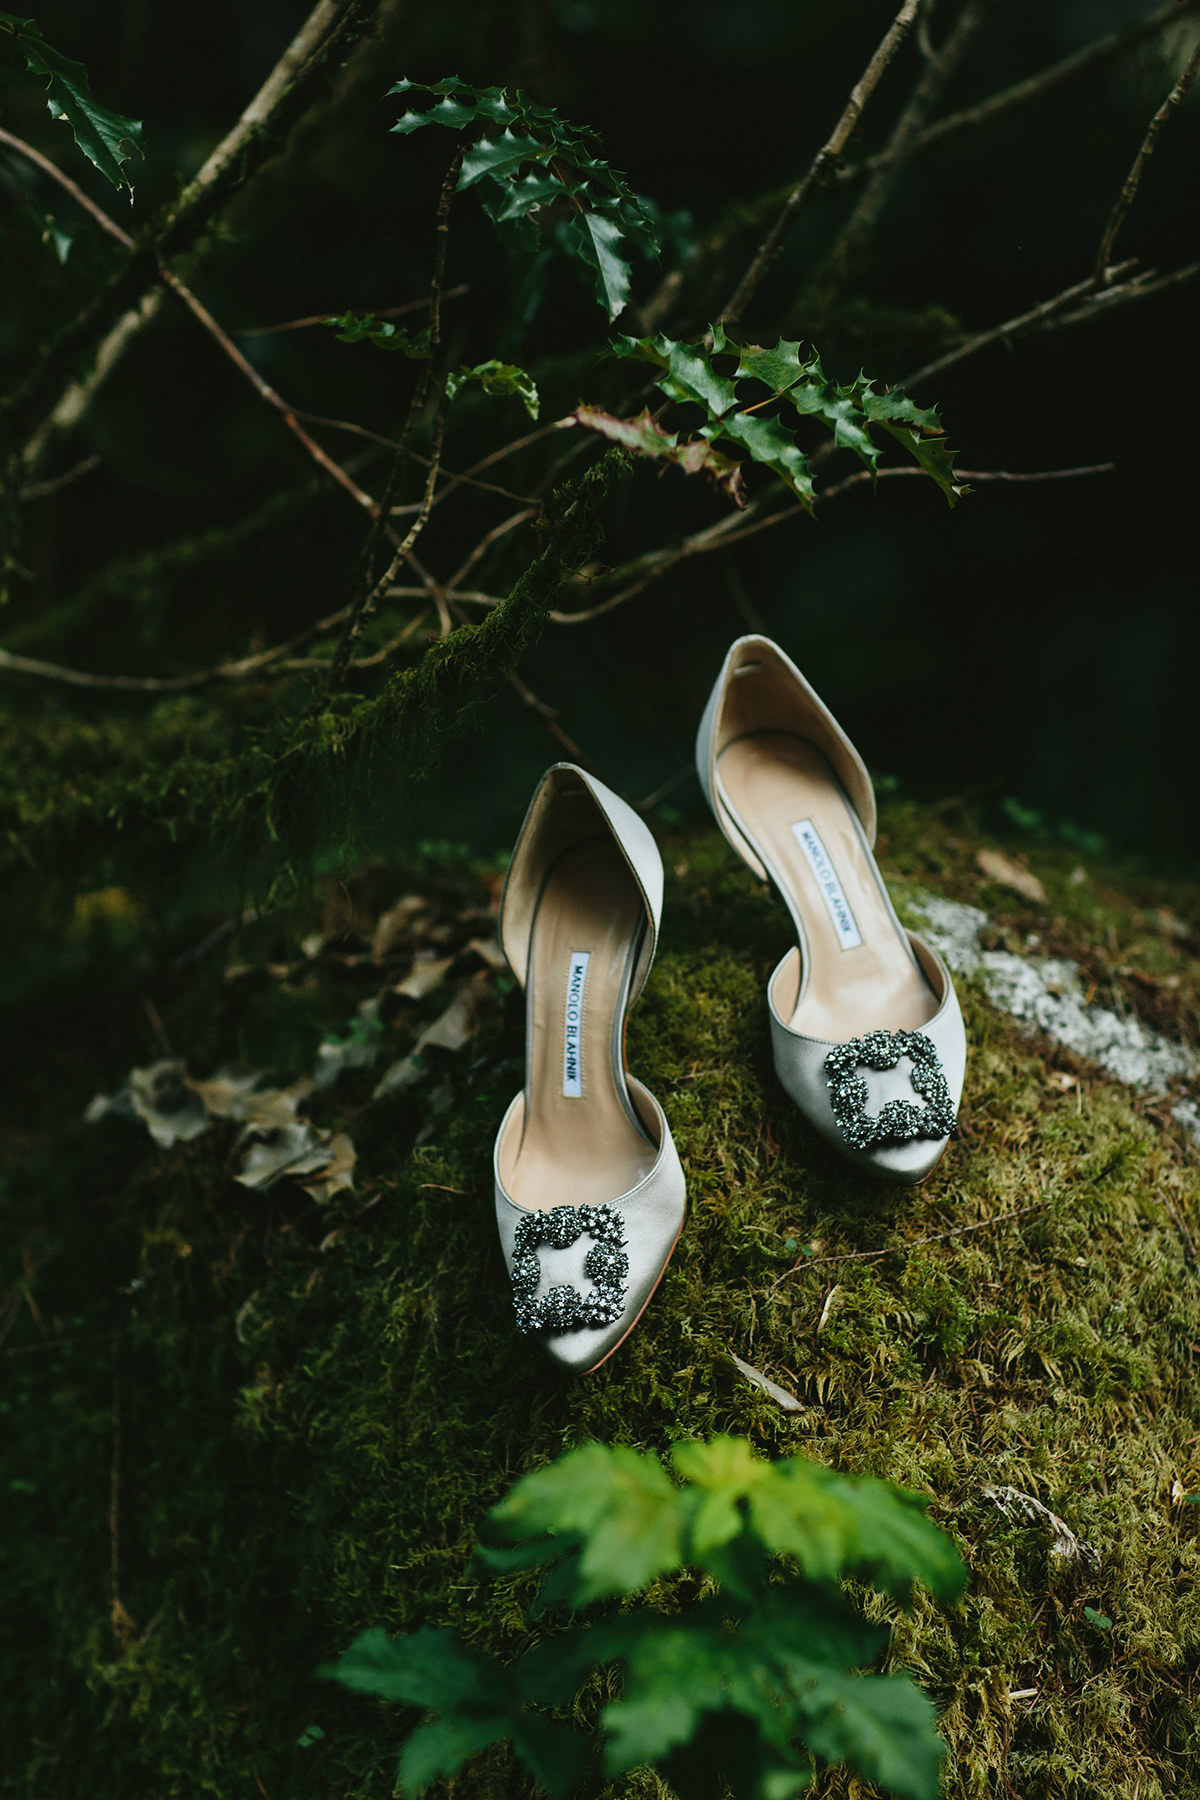 Manolo Blahnik wedding shoes in Vancouver www.lucida-photography.com